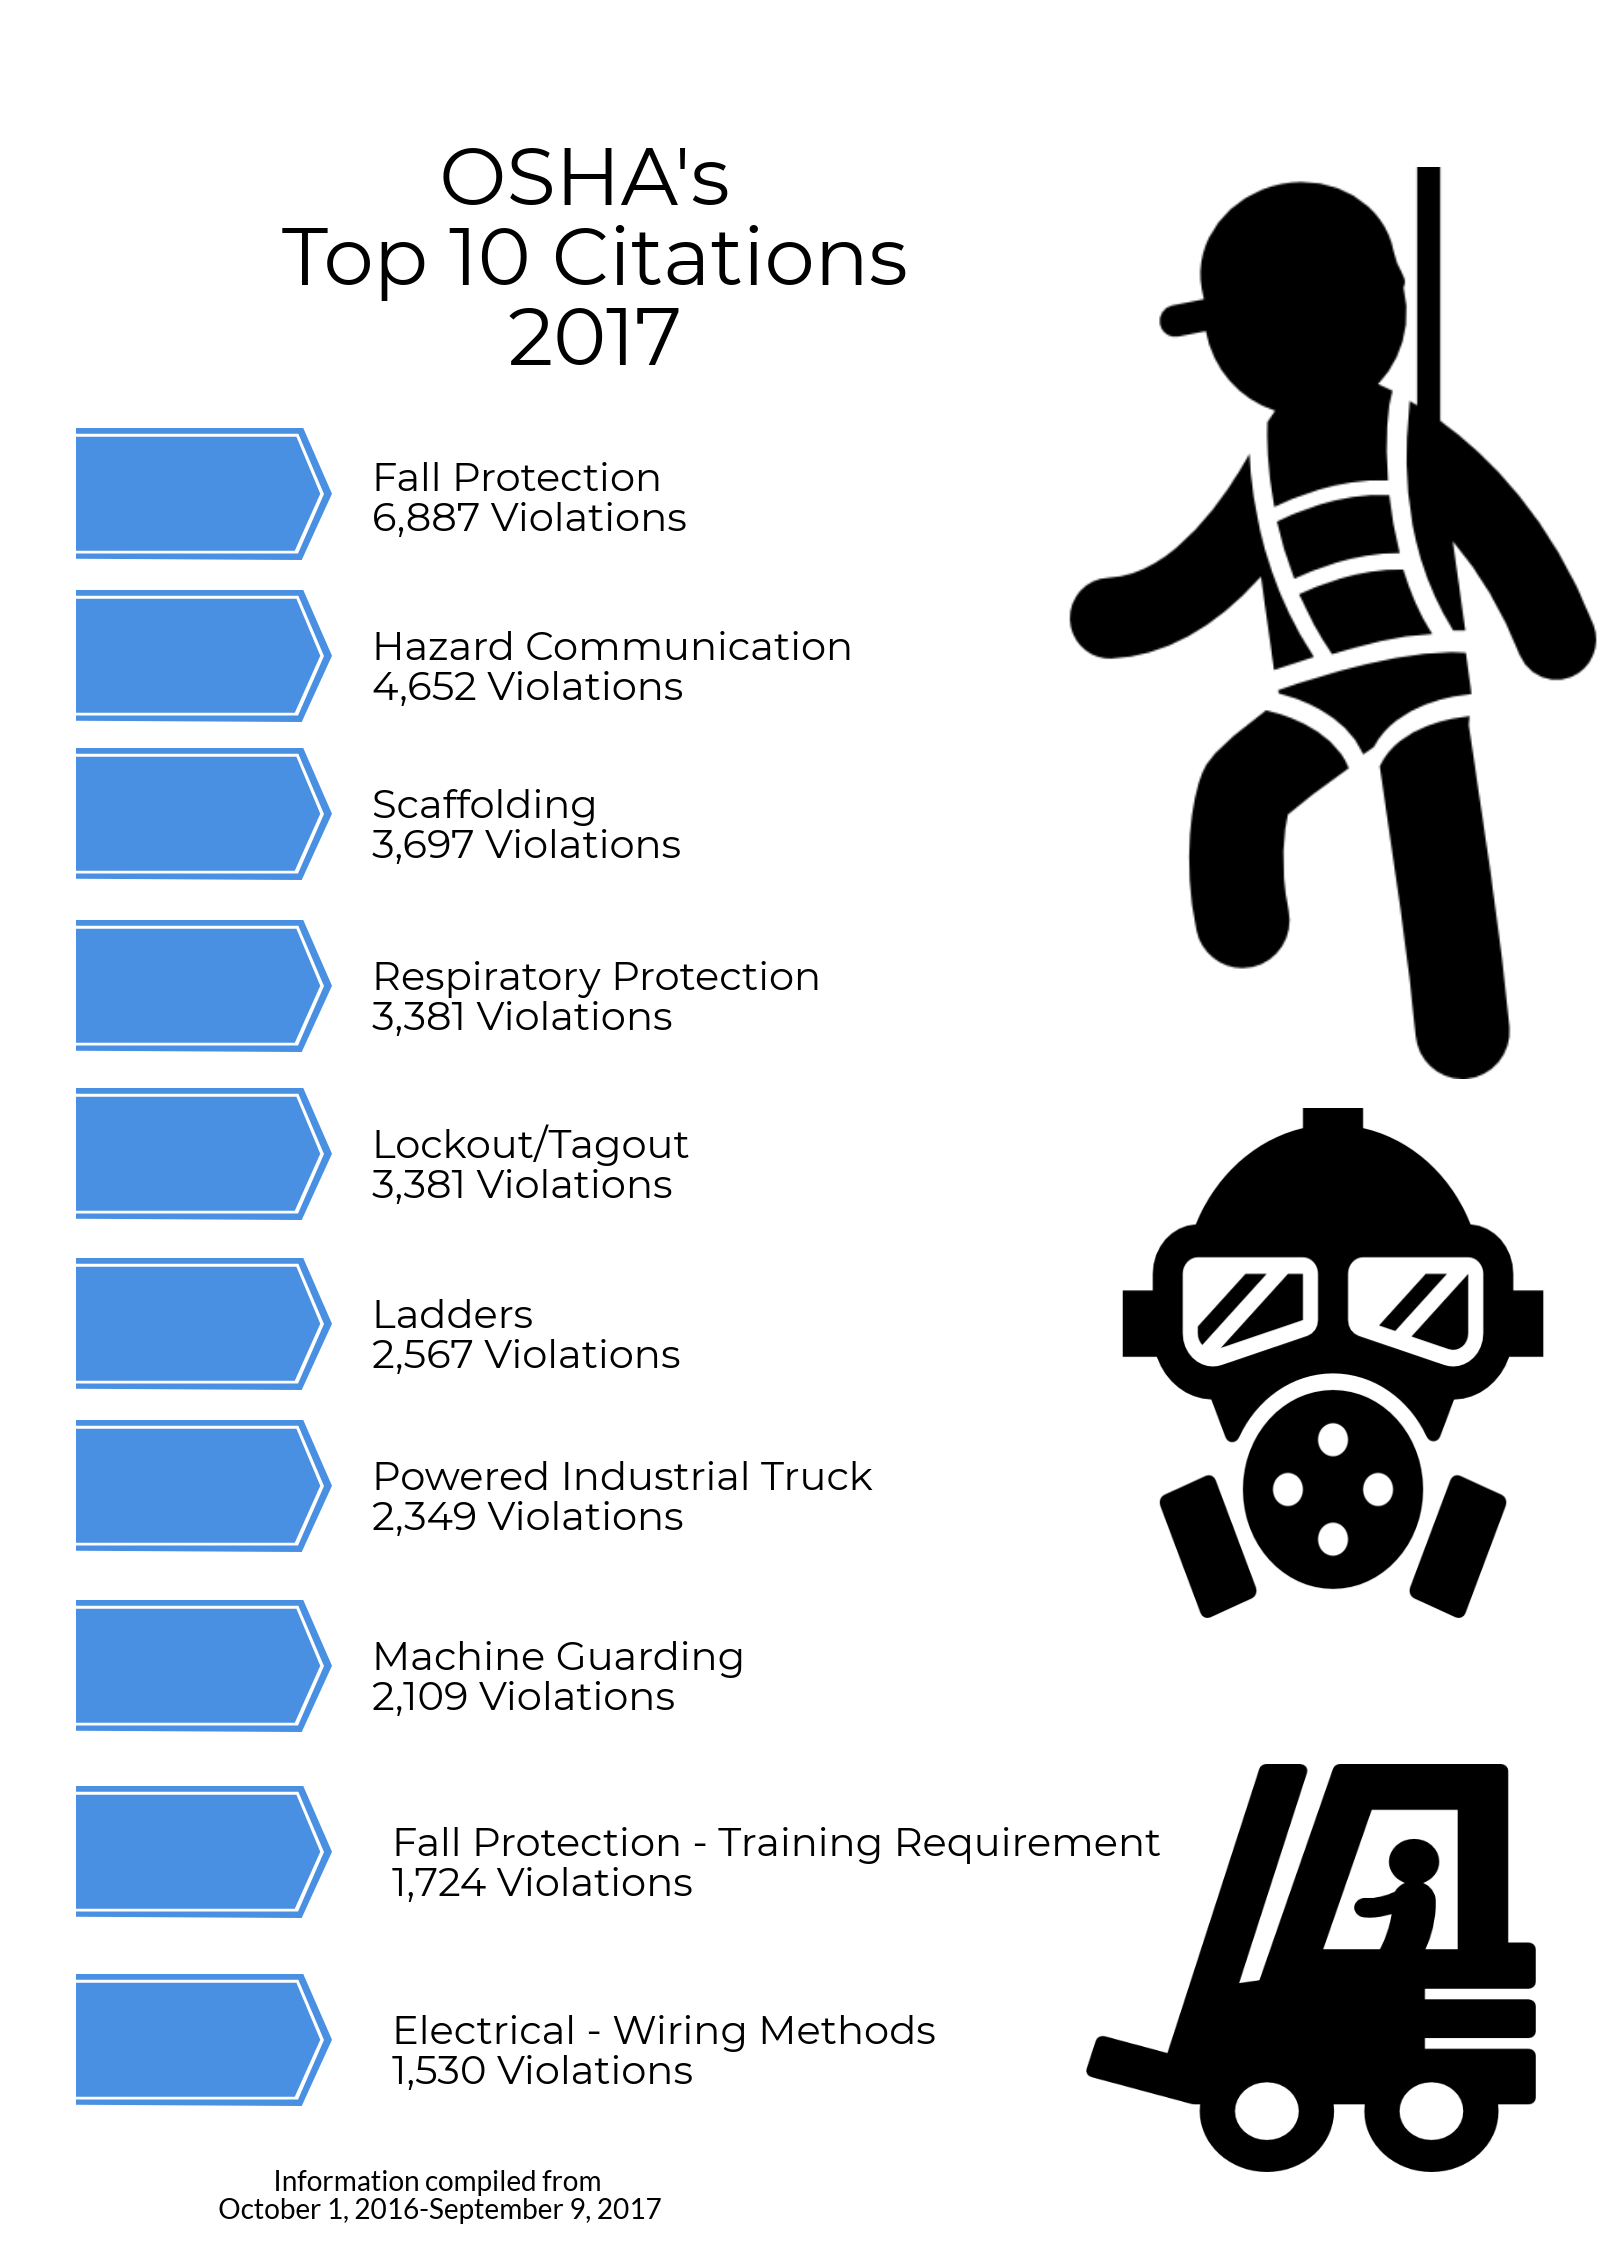 OSHA's Top 10 Citations for 2017